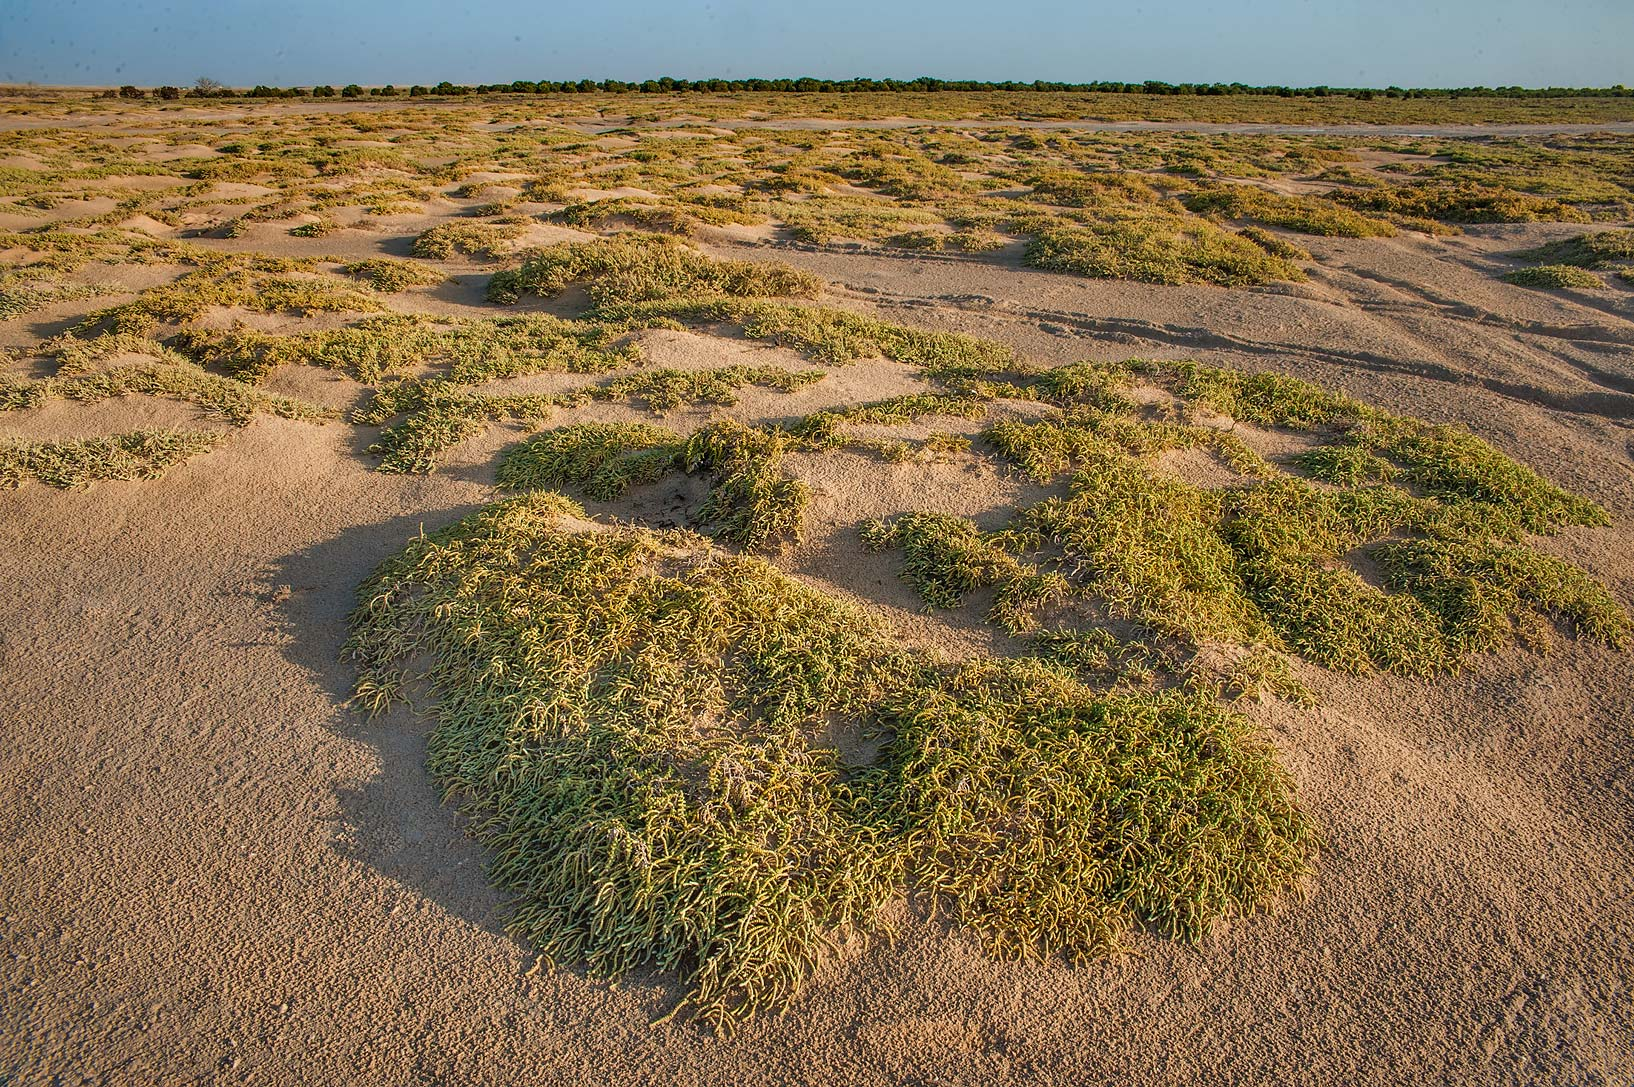 Mats of jointed glasswort (Halocnemum strobilaceum) in salt marsh near Al Thakira. Qatar